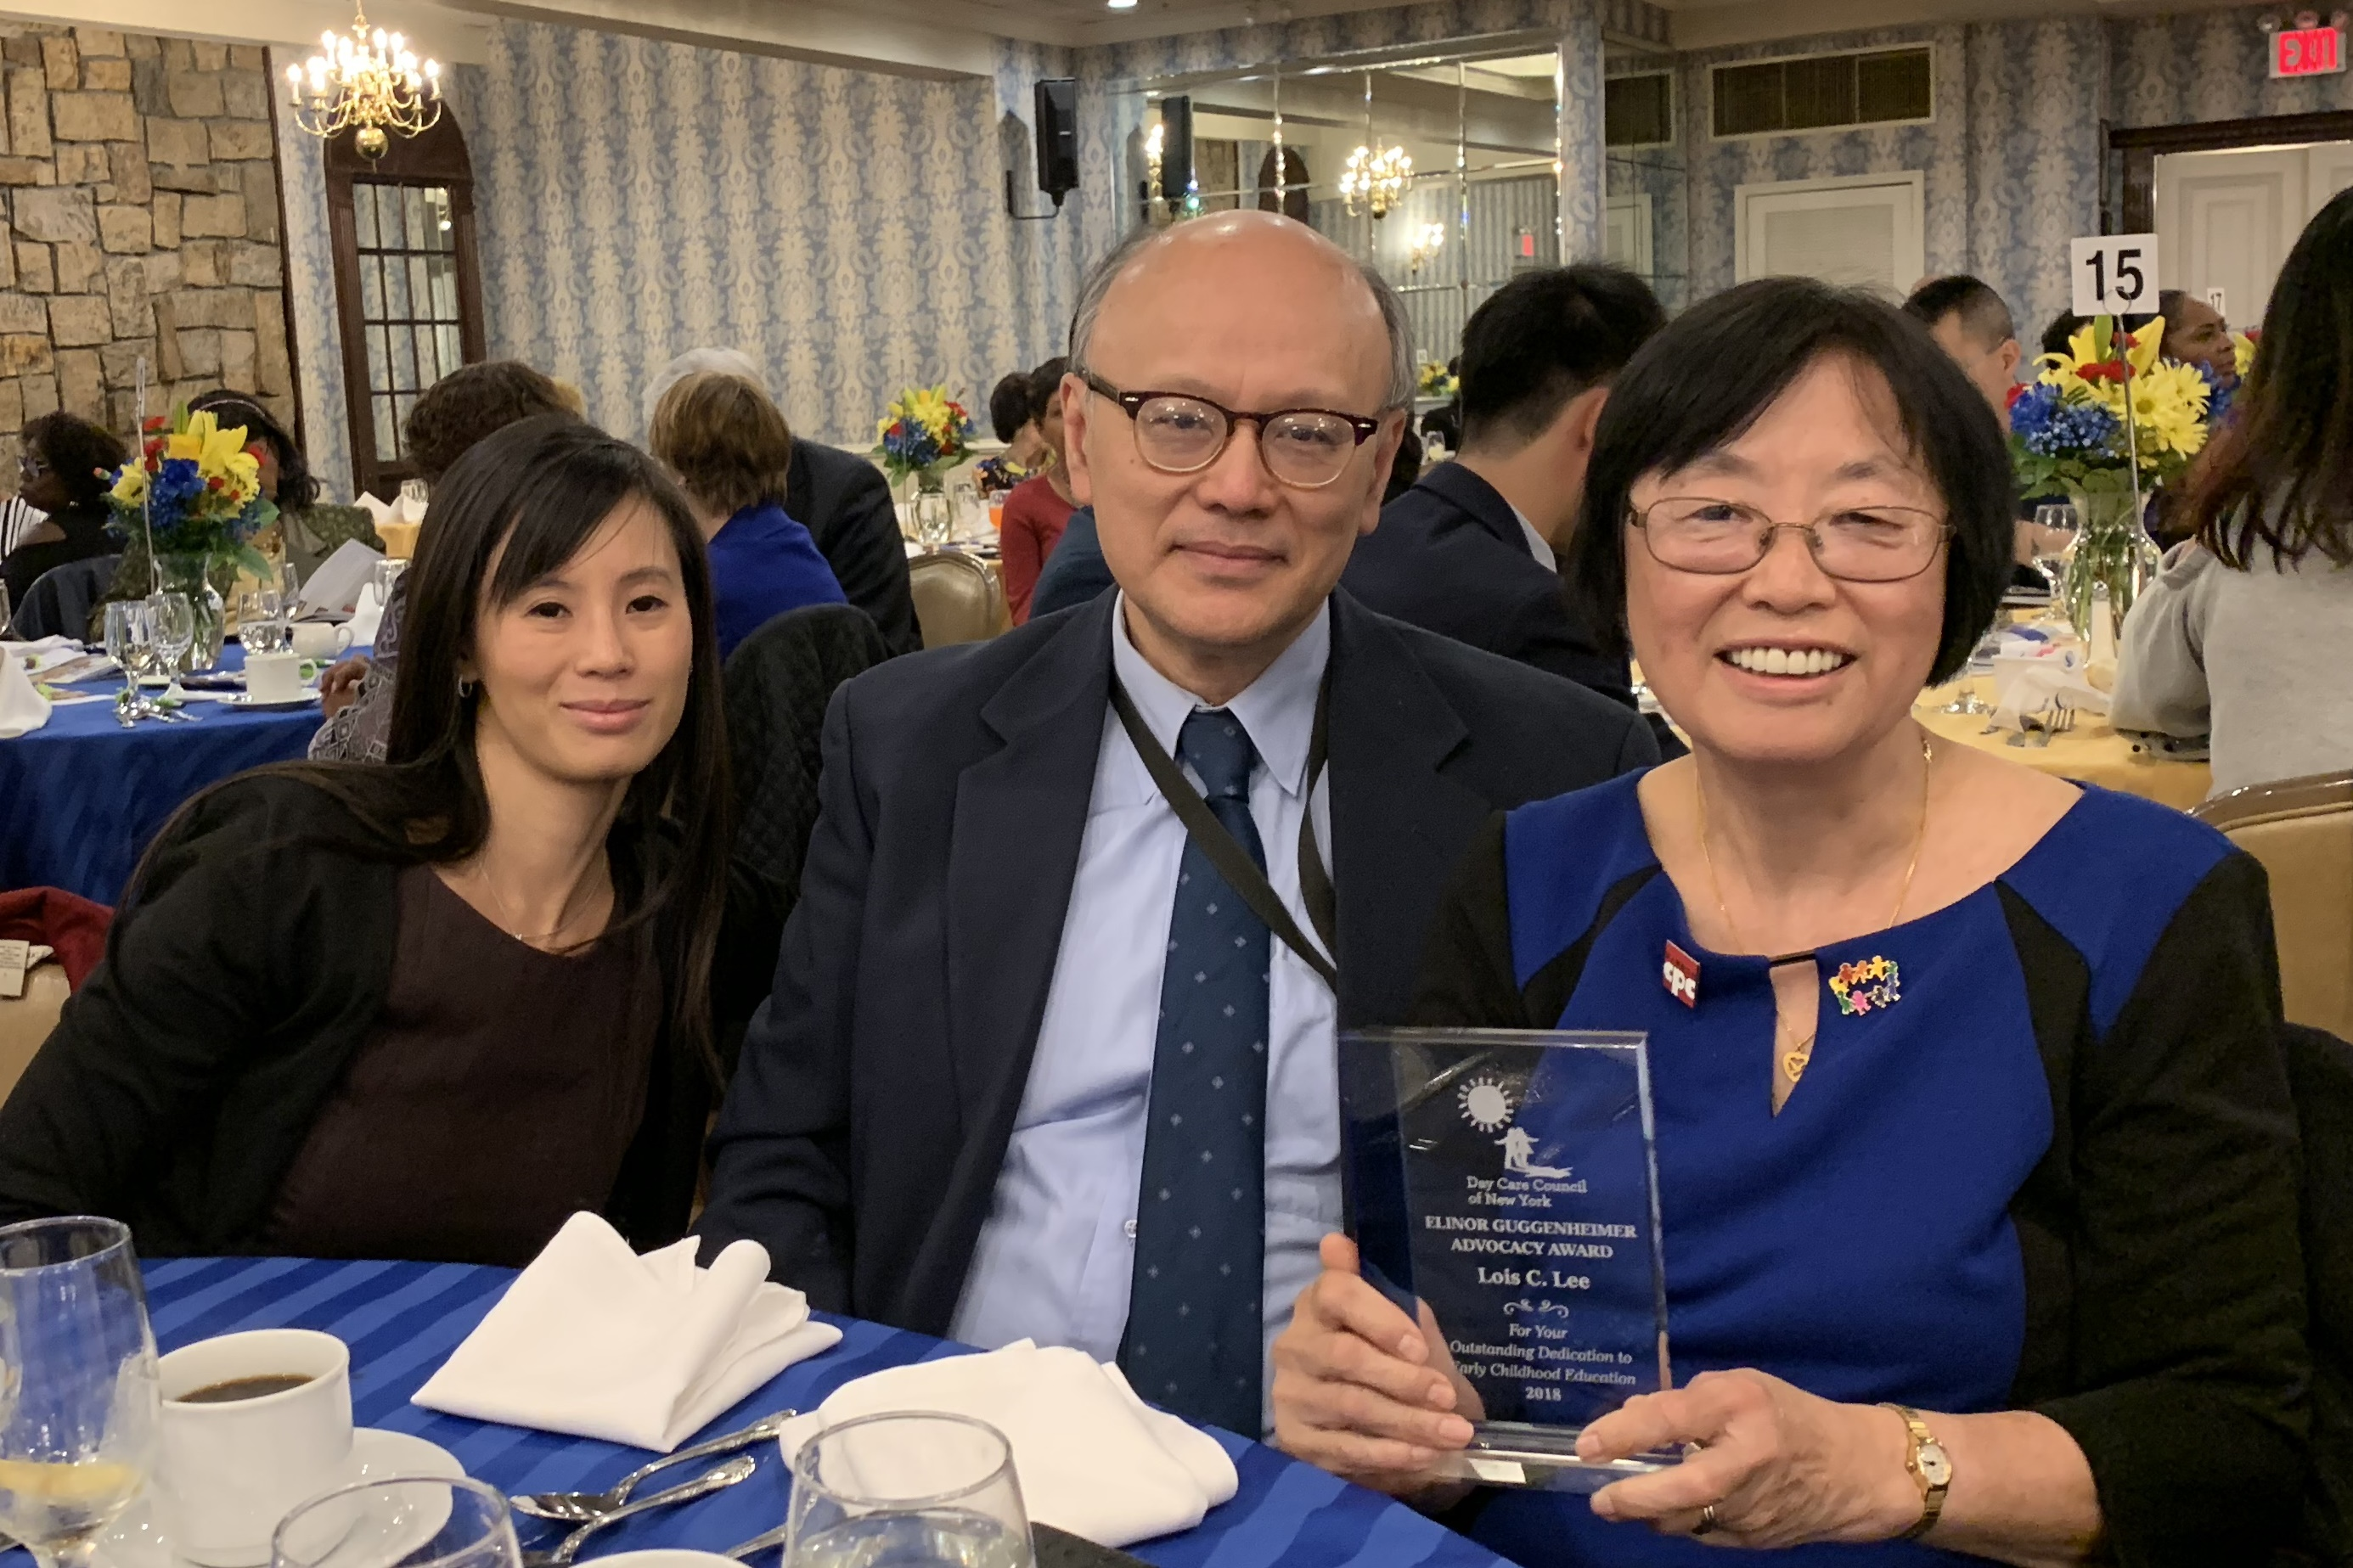 DCCNY 2018 Unsung Hero Lois Lee and Family